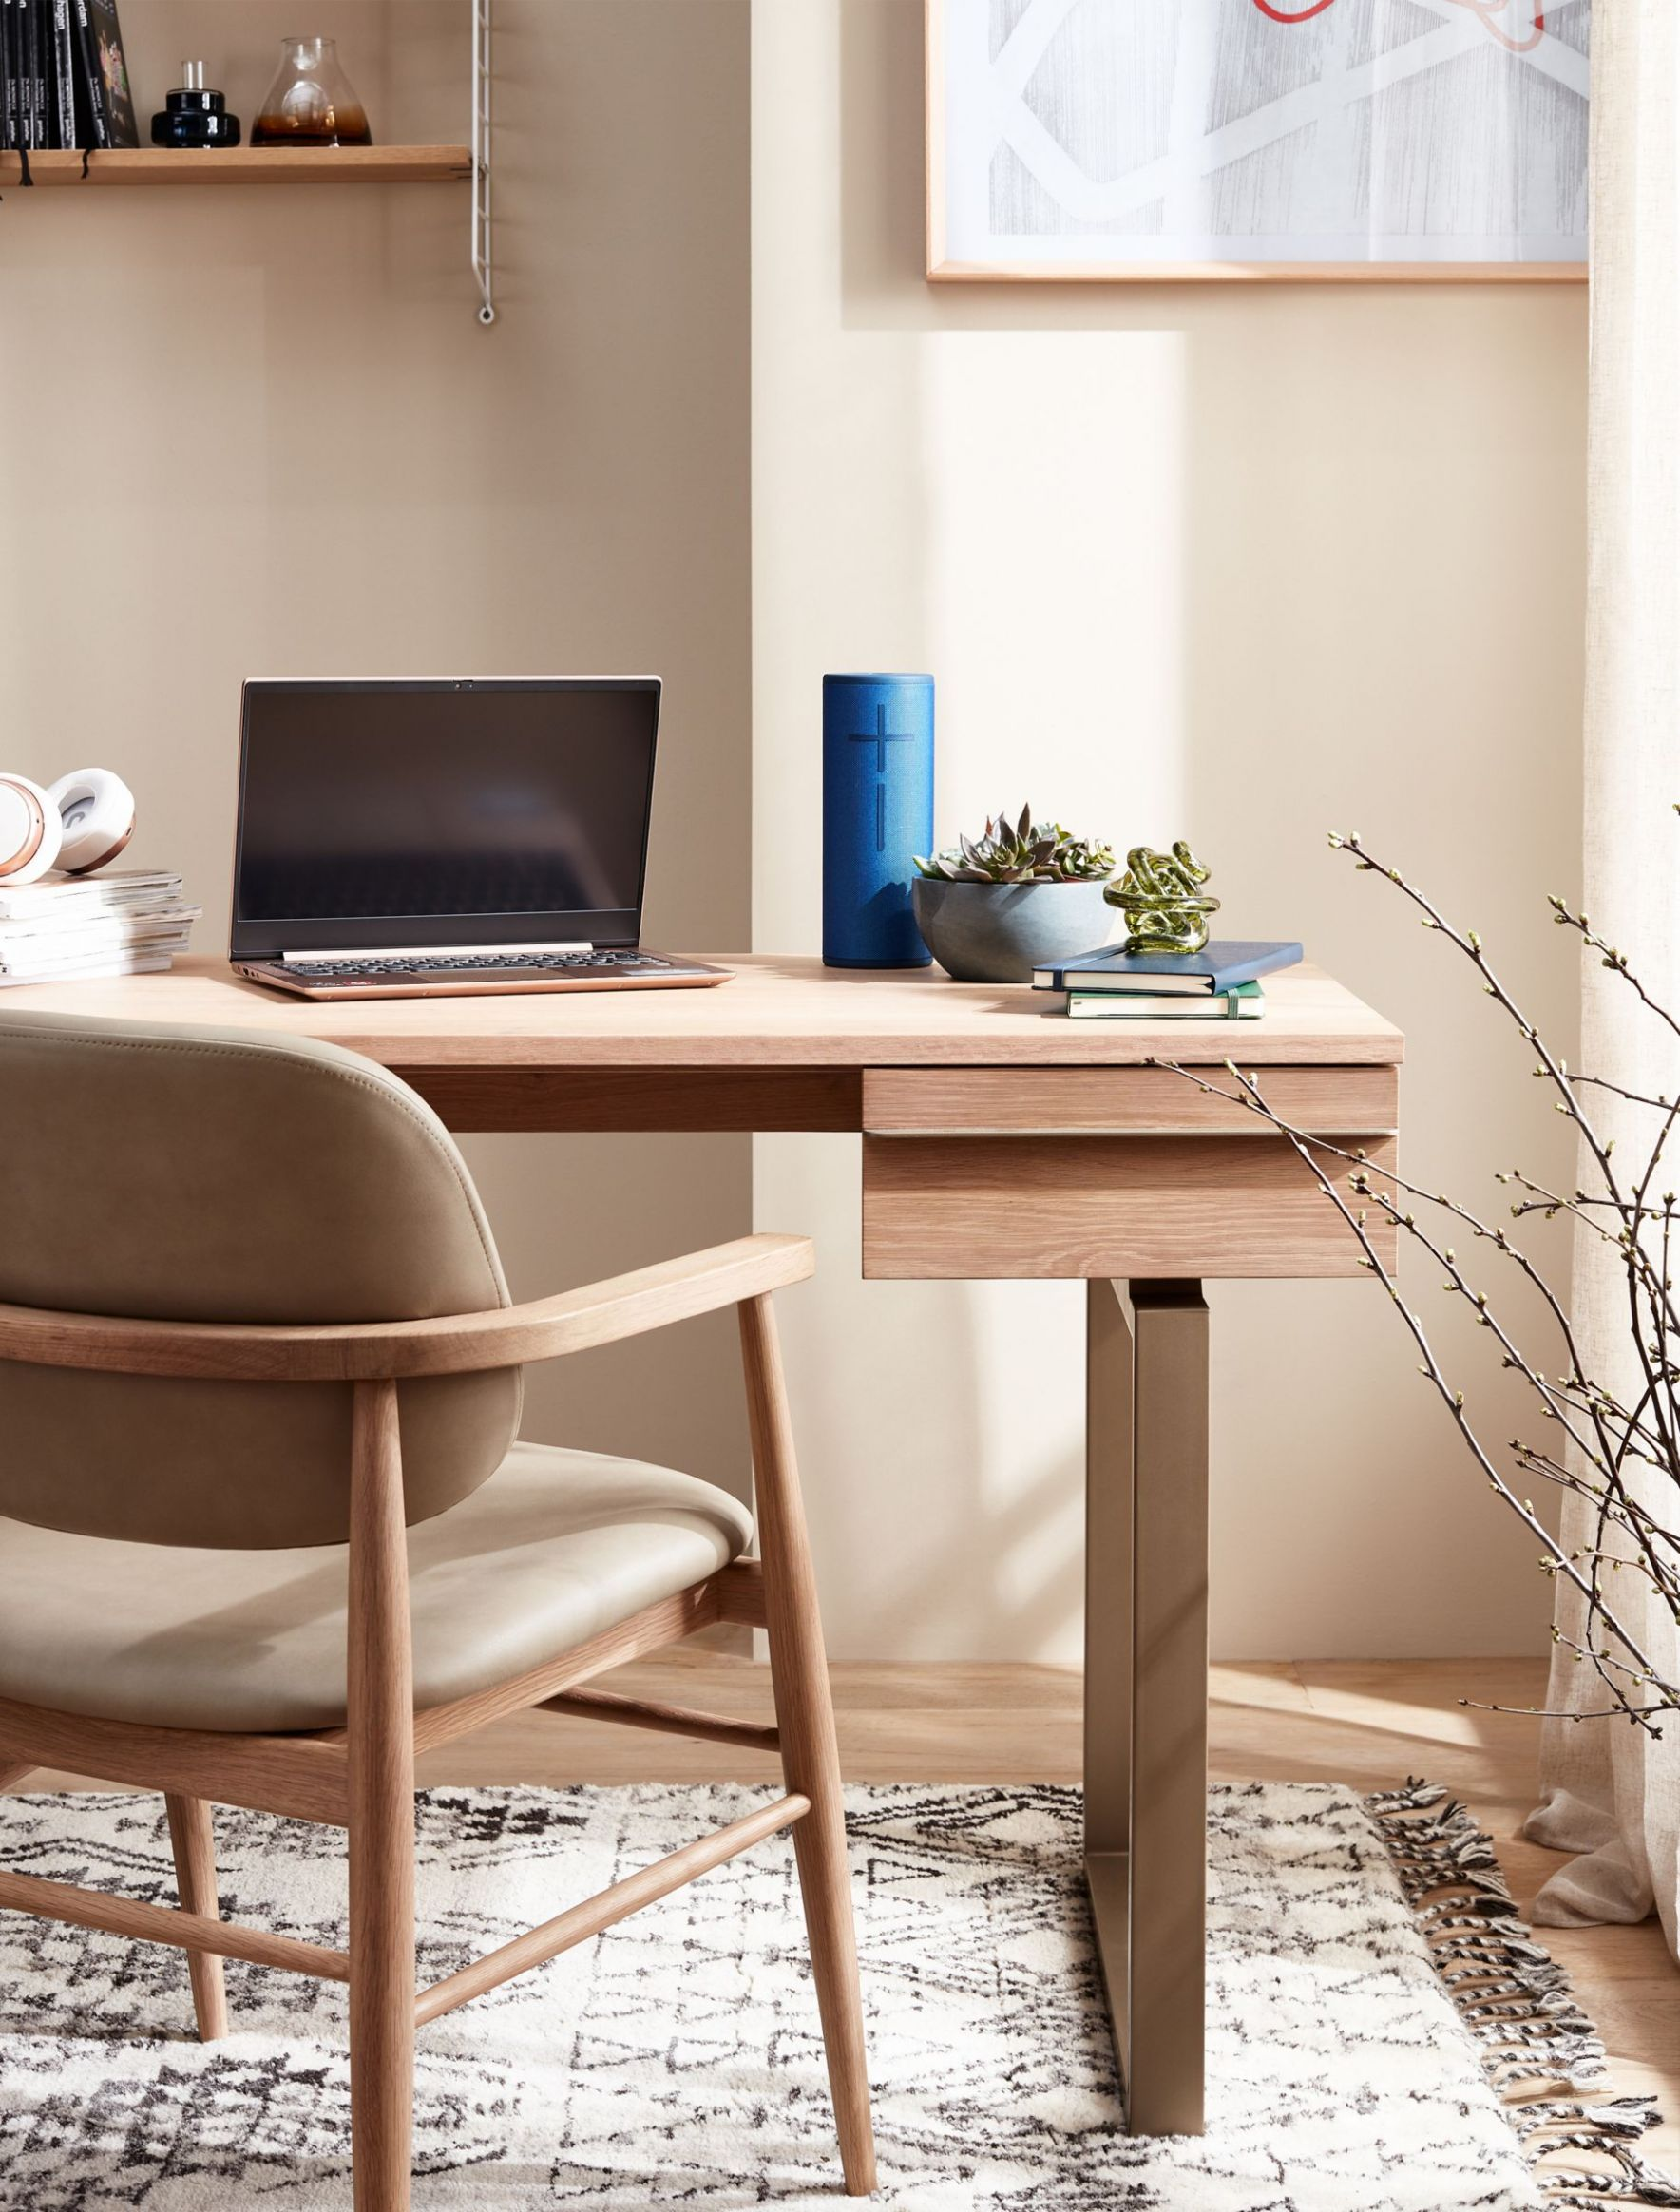 How to design a home office that is practical and stylish - john lewis home office ideas